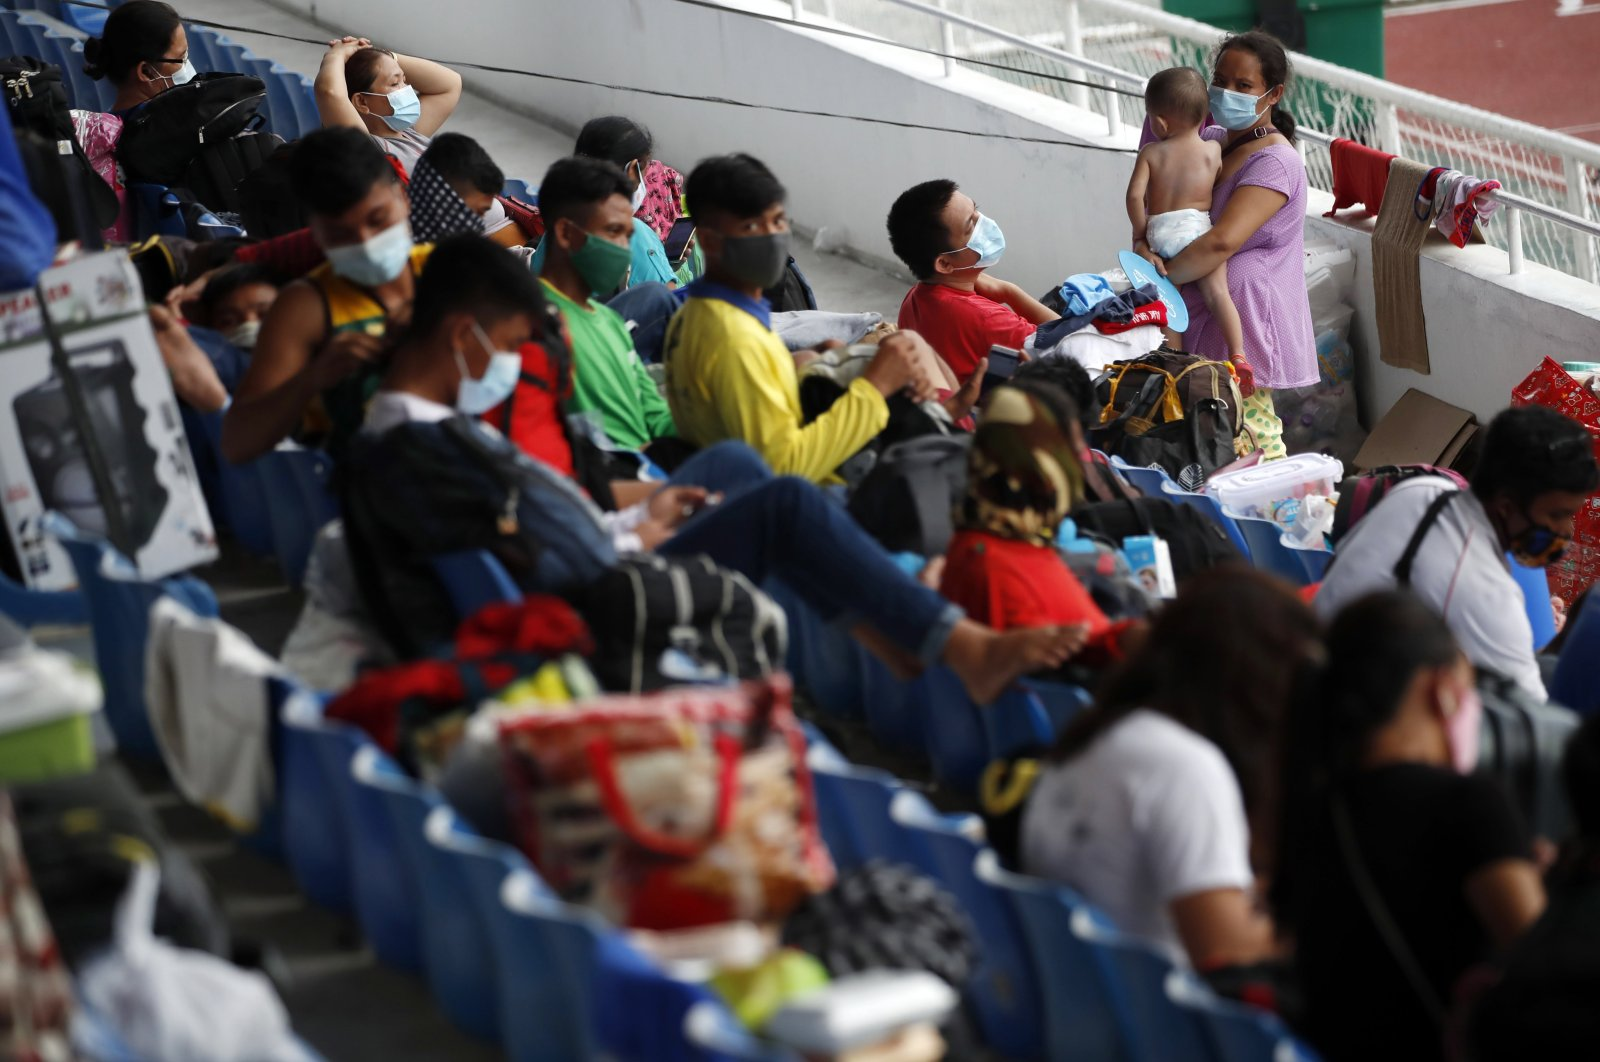 Stranded Filipino villagers with their belongings take shelter inside a gymnasium during the coronavirus and COVID-19 disease pandemic in Manila, Philippines, 29 July 2020. (EPA Photo)